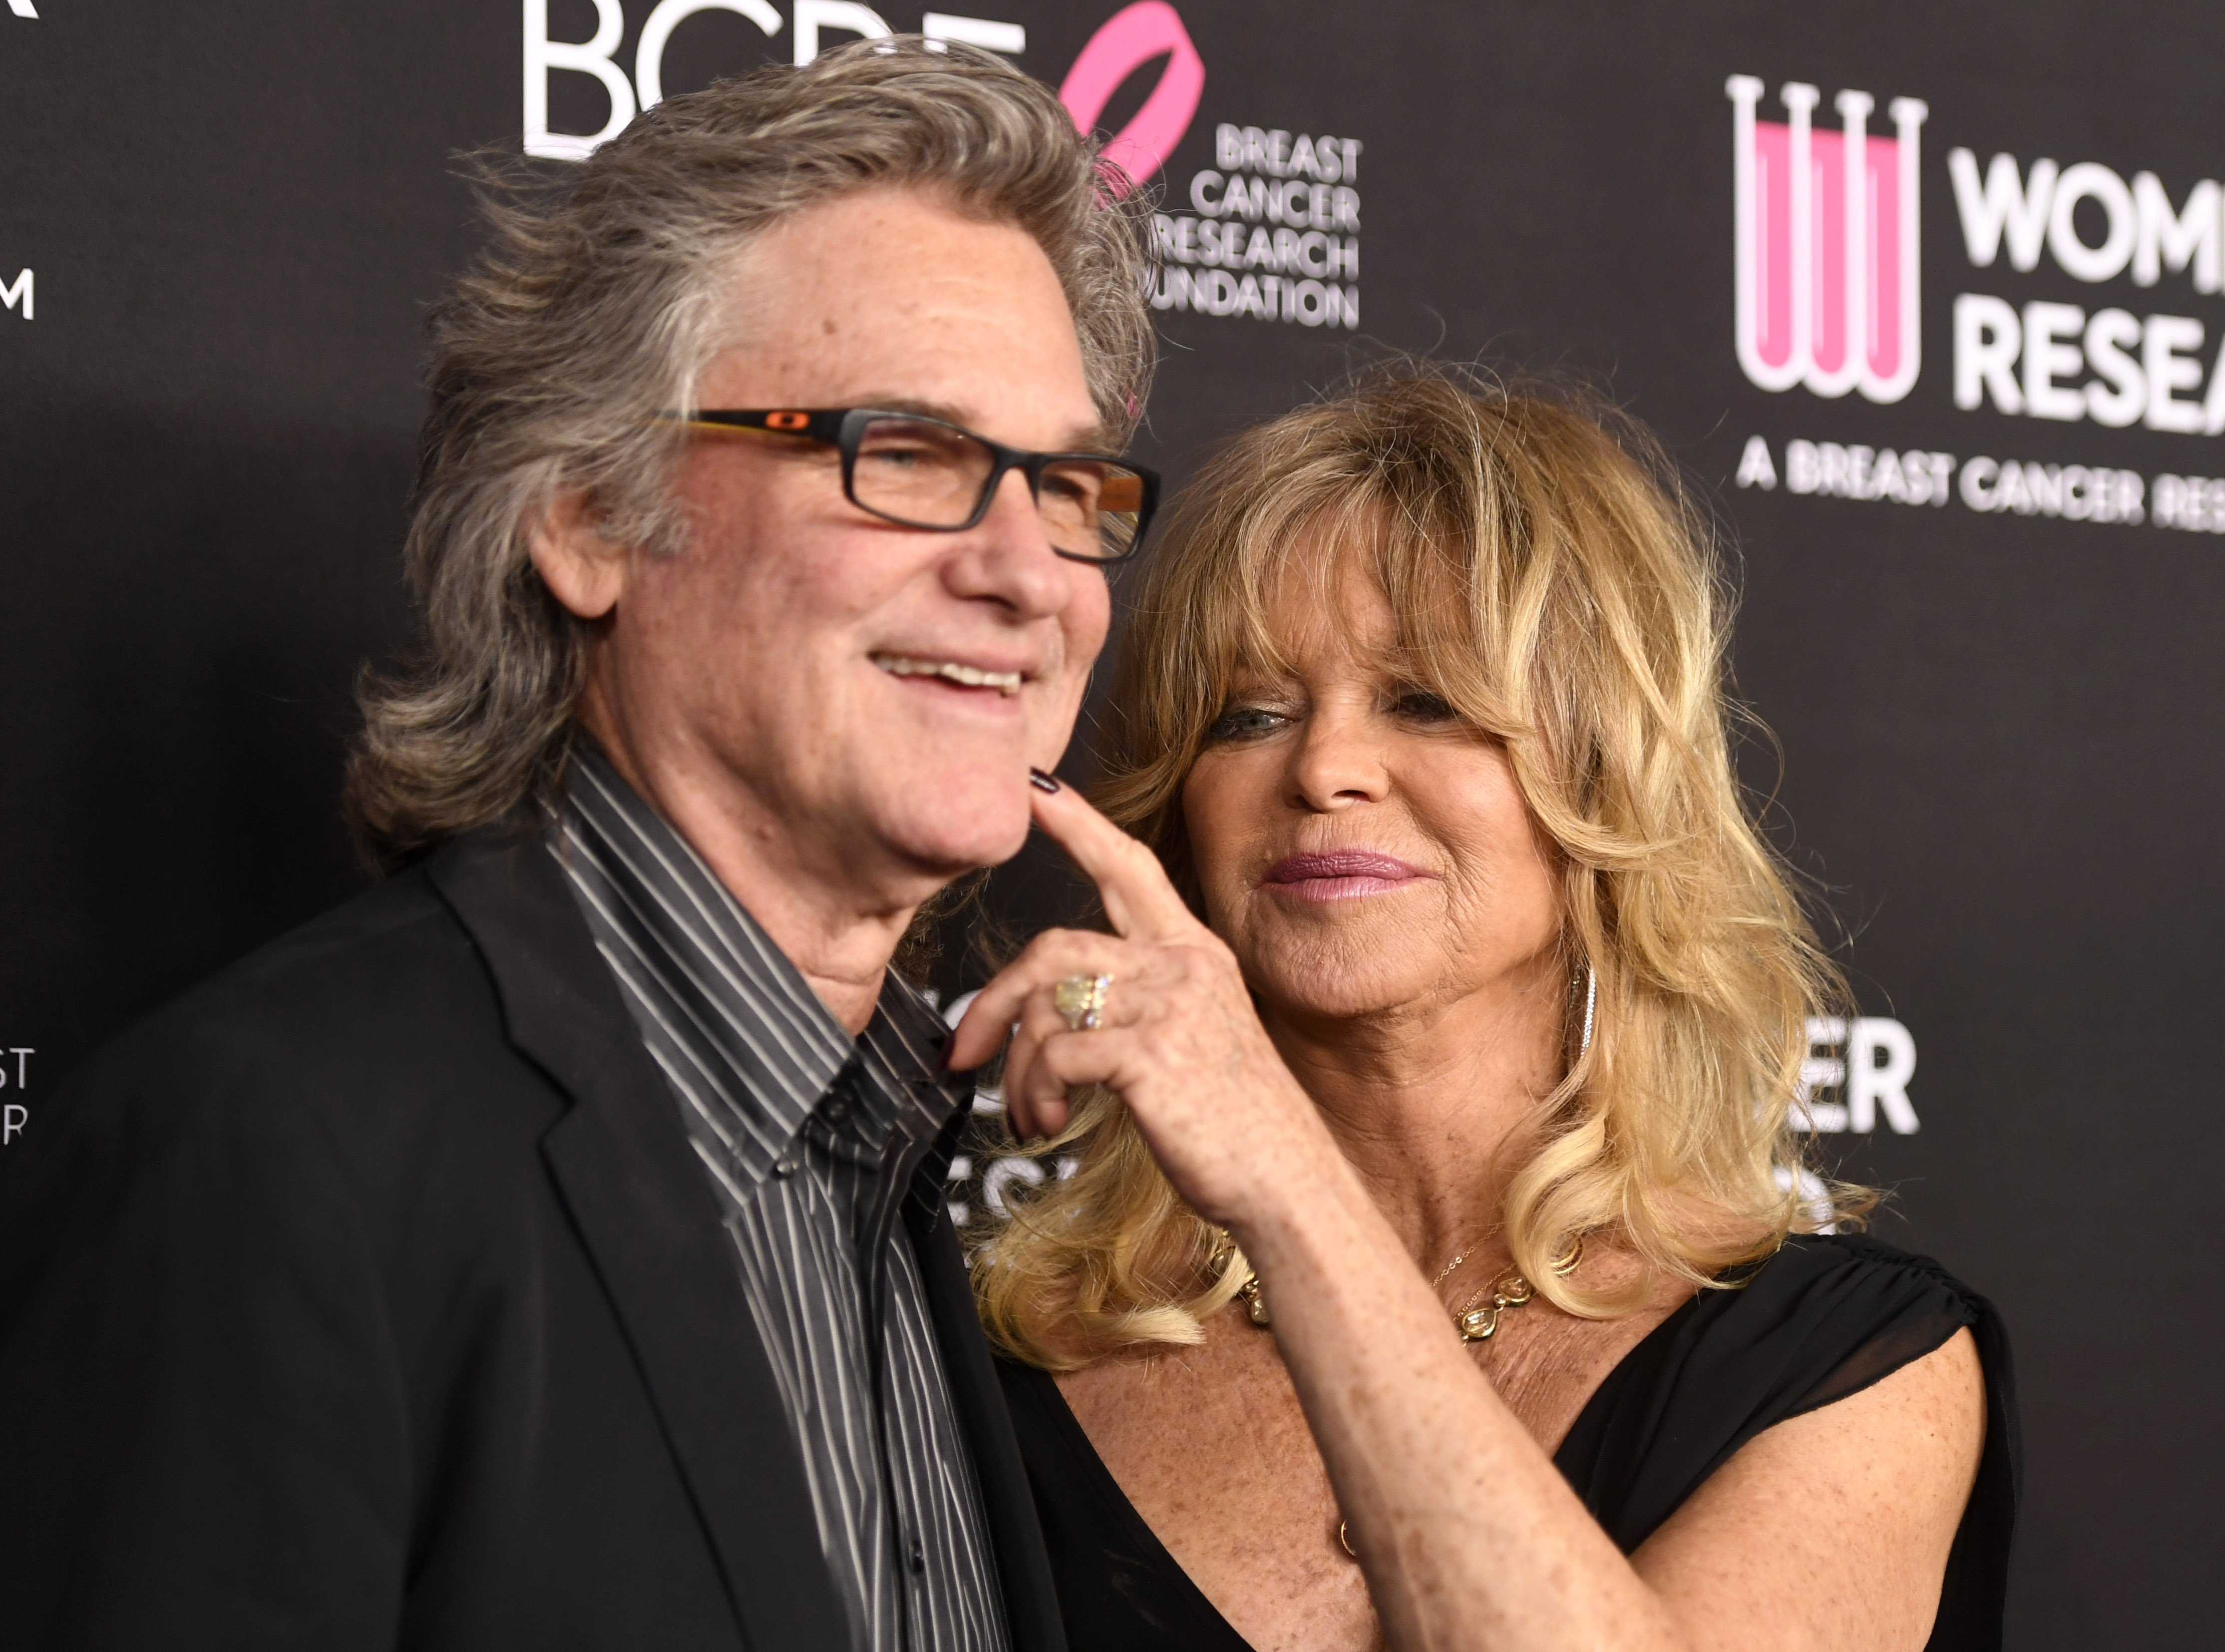 Kurt Russell and Goldie Hawn attend The Women's Cancer Research Fund's An Unforgettable Evening Benefit Gala at the Beverly Wilshire Four Seasons Hotel on February 28, 2019 in Beverly Hills, California